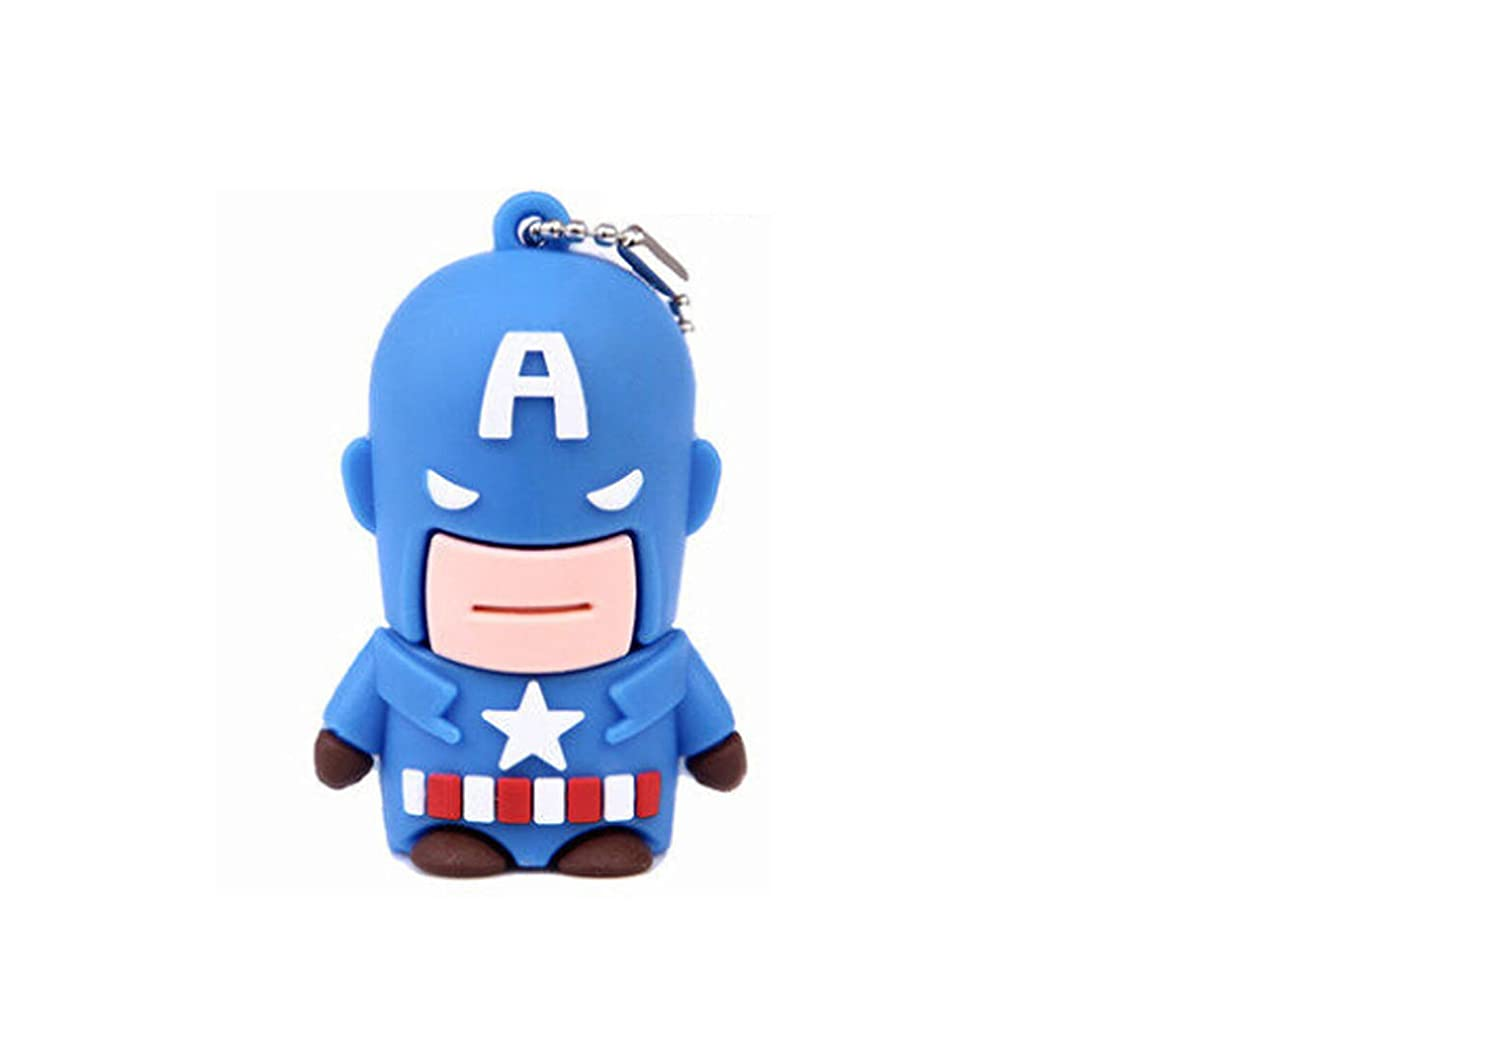 Captain America Cartoon 16g U Disk - Cute Mini Creative U Disk 16g: Amazon.co.uk: Computers & Accessories